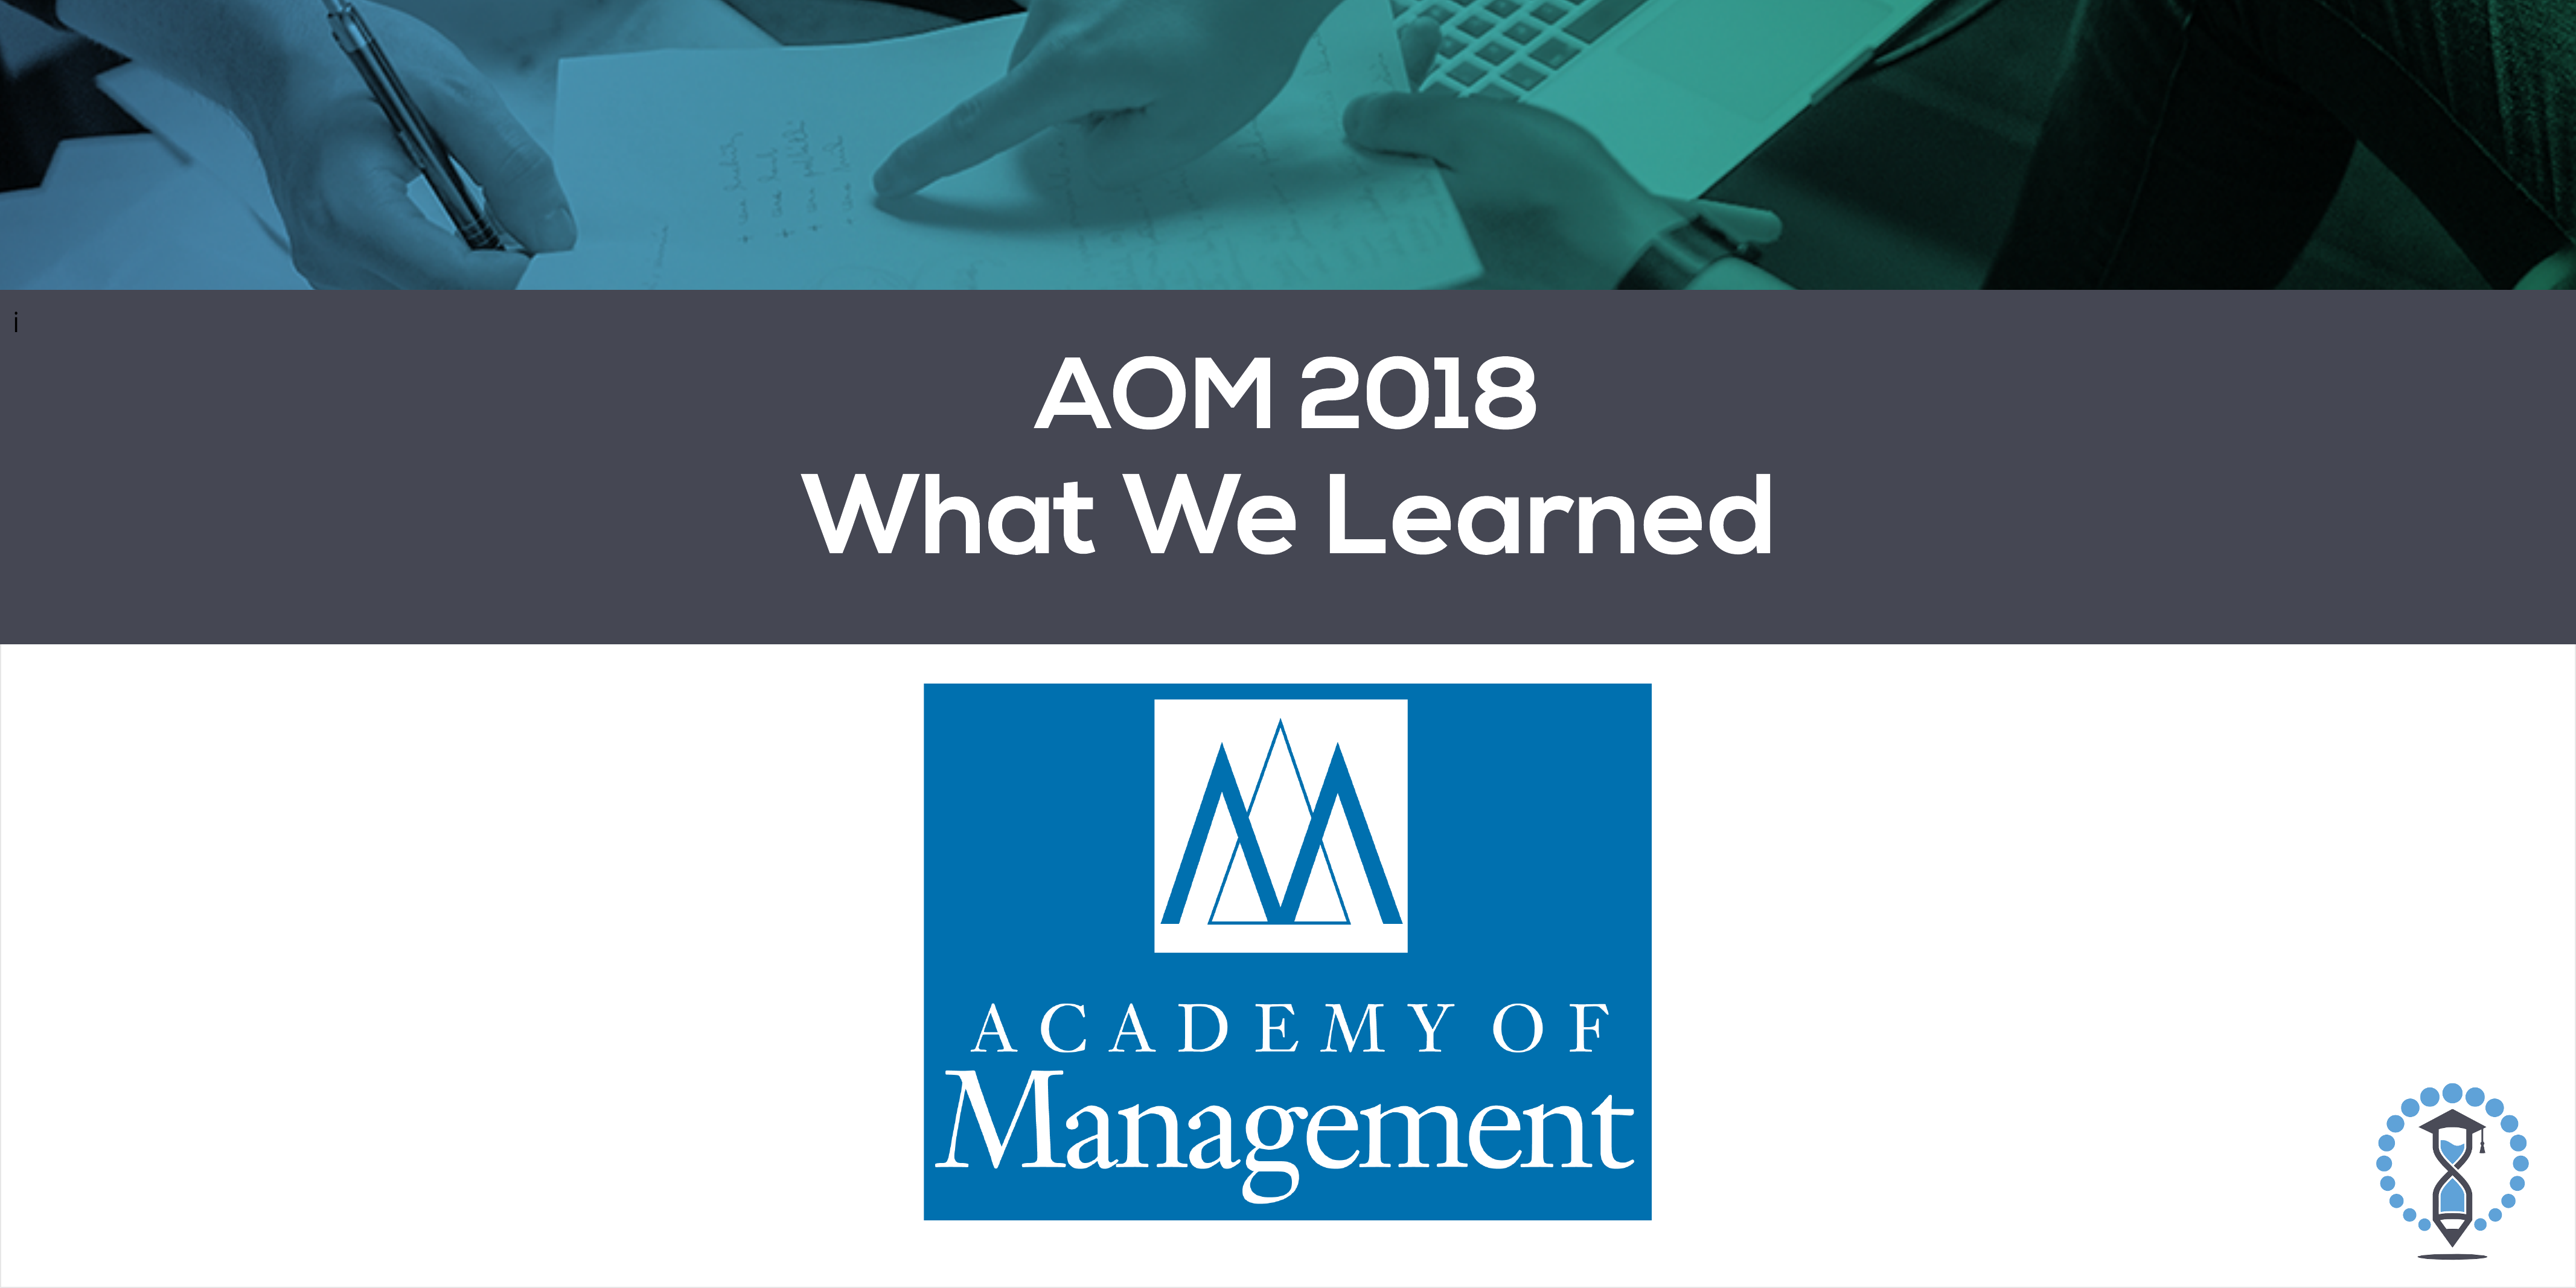 What We Learned at AOM